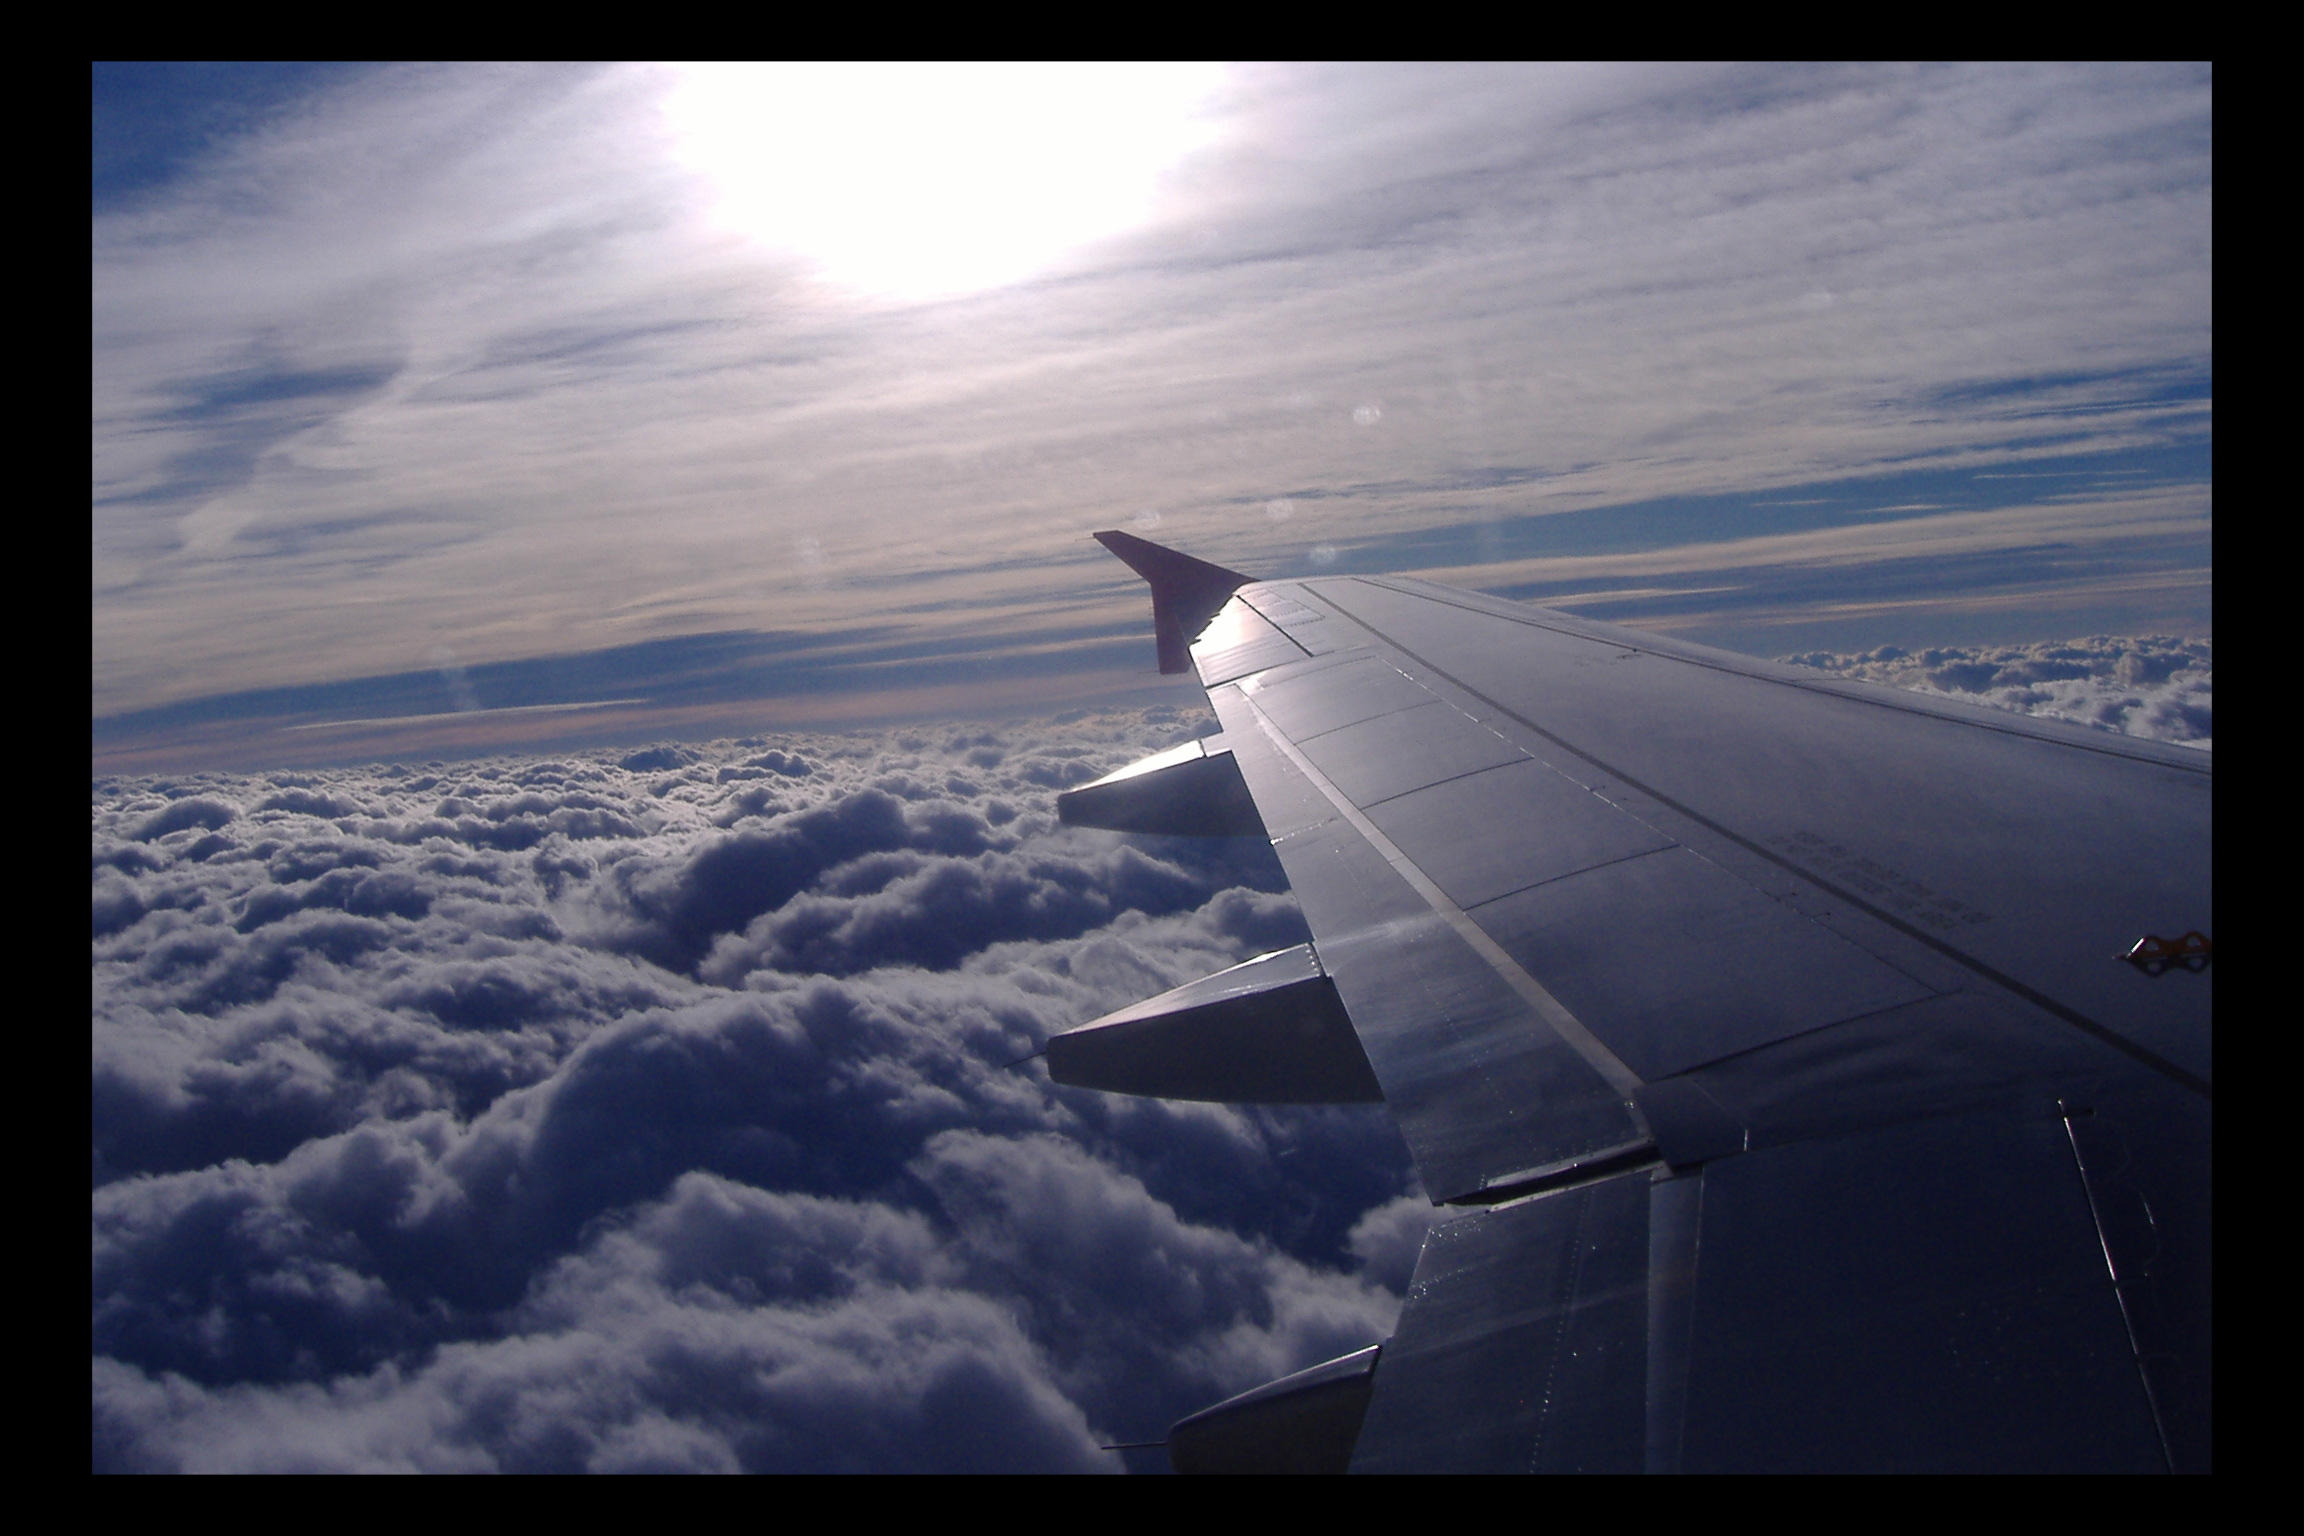 In the plane by Siwiel